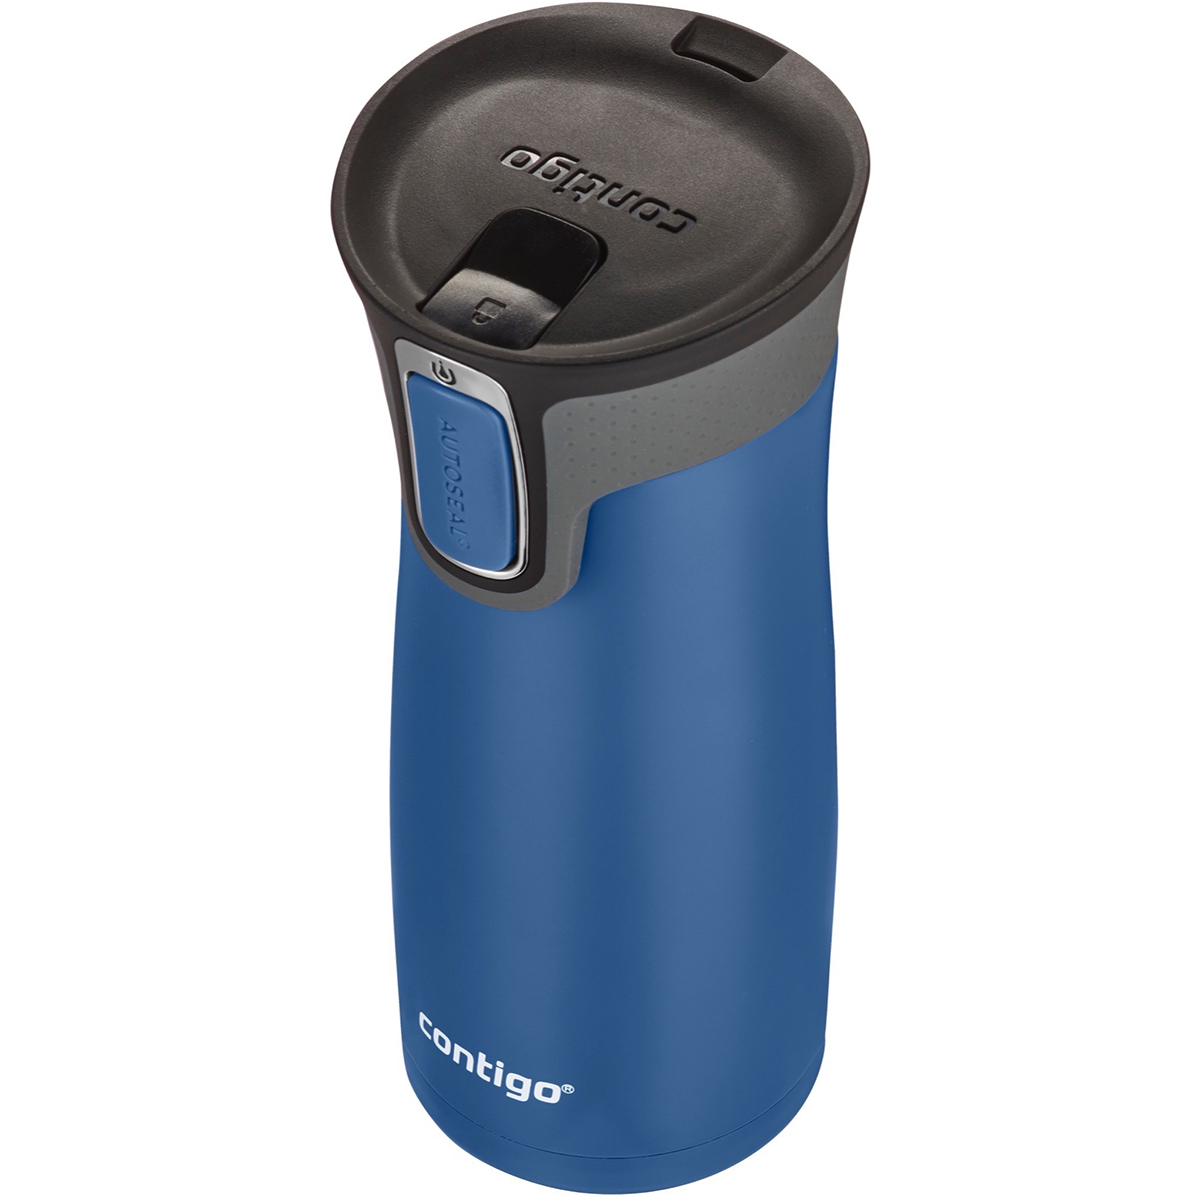 Contigo-16-oz-West-Loop-2-0-AutoSeal-Insulated-Stainless-Steel-Travel-Mug miniatura 16